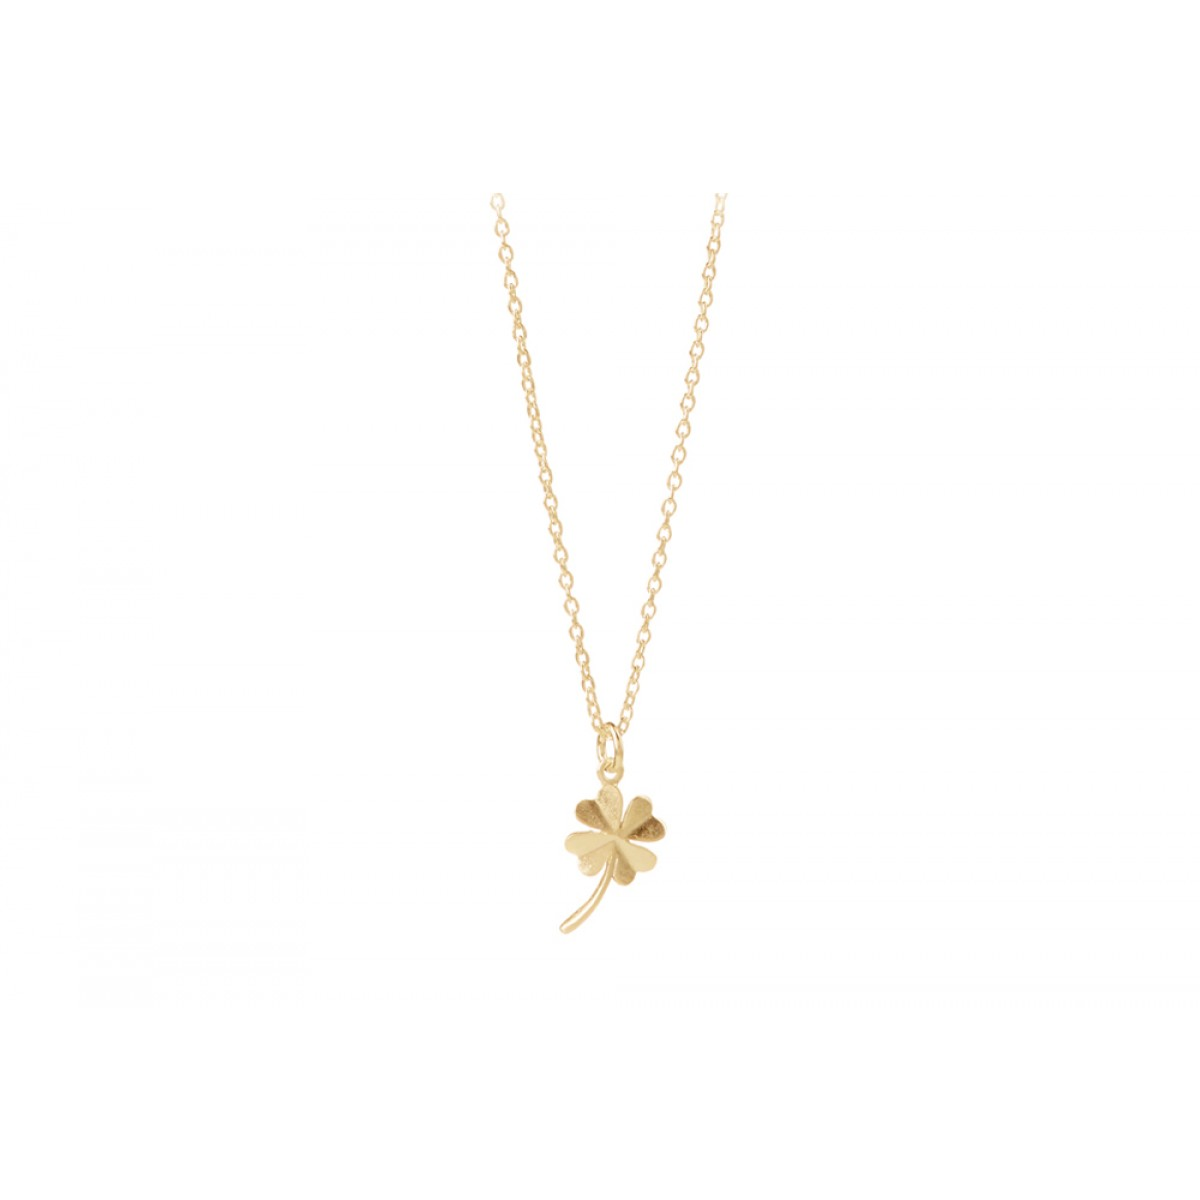 Pernille Corydon N320 Gold Clover Necklace-30